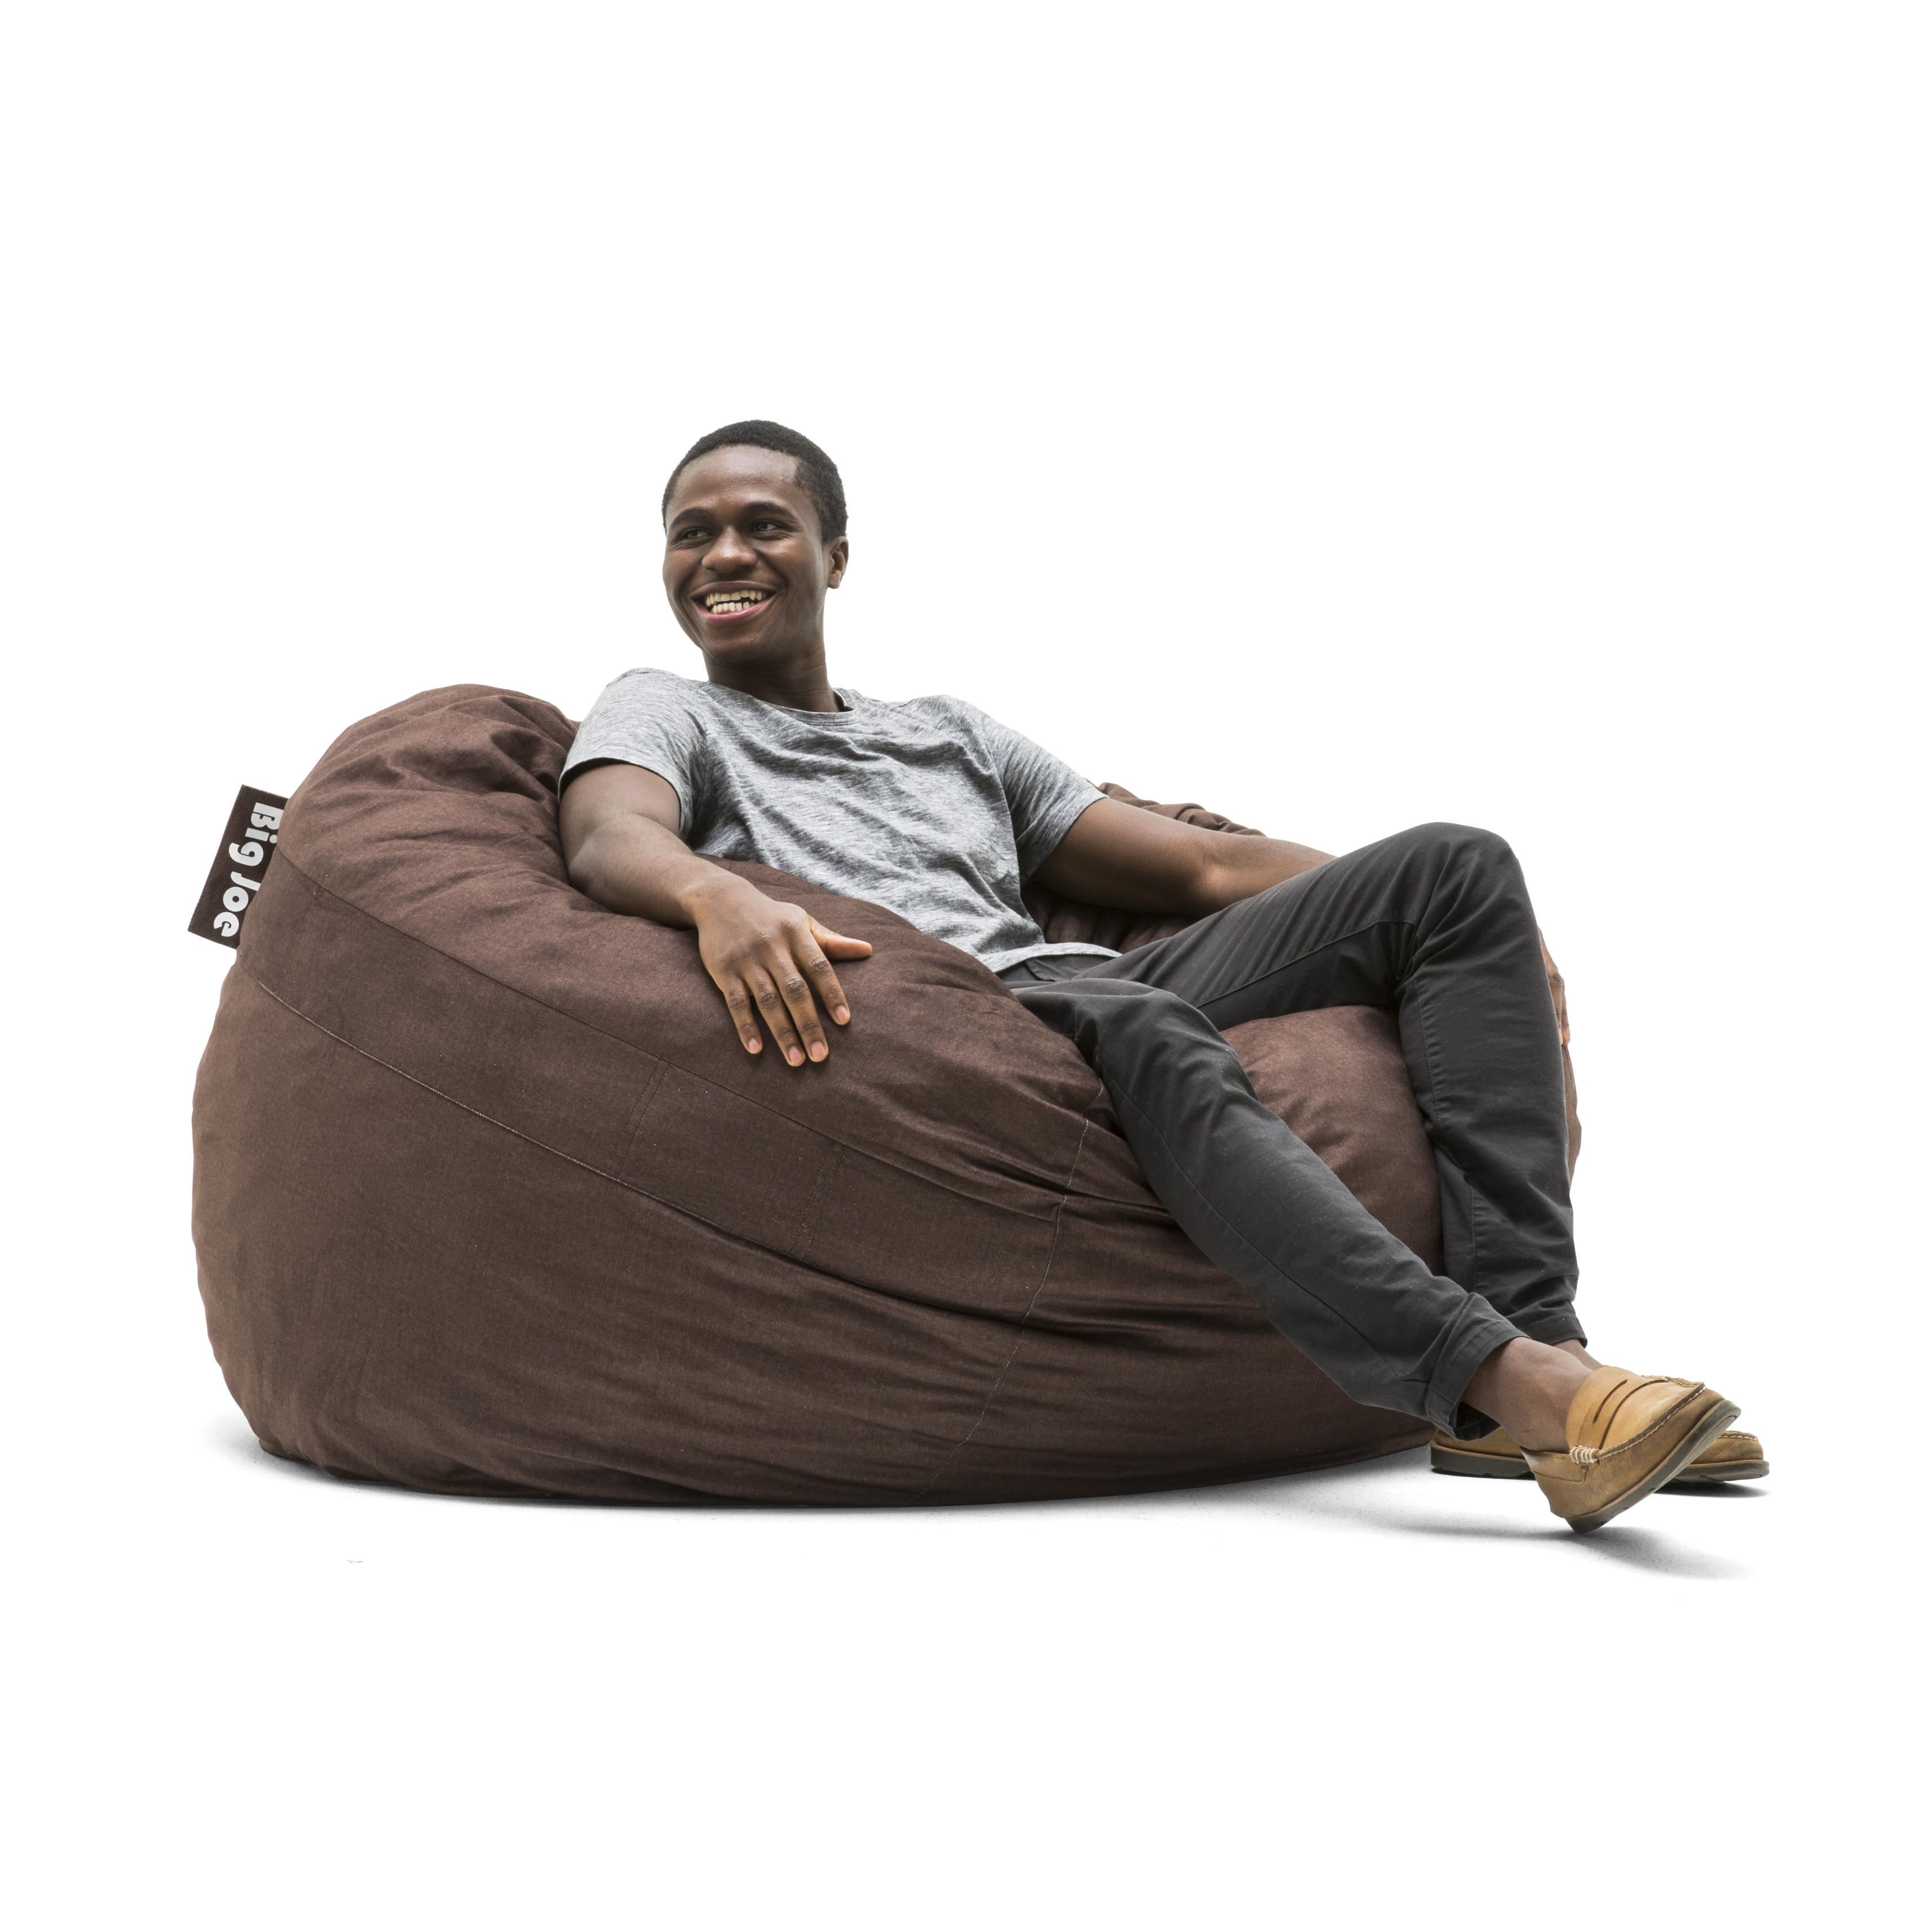 Big Joe King 5' Fuf Bean Bag Chair, Multiple Colors/Fabrics